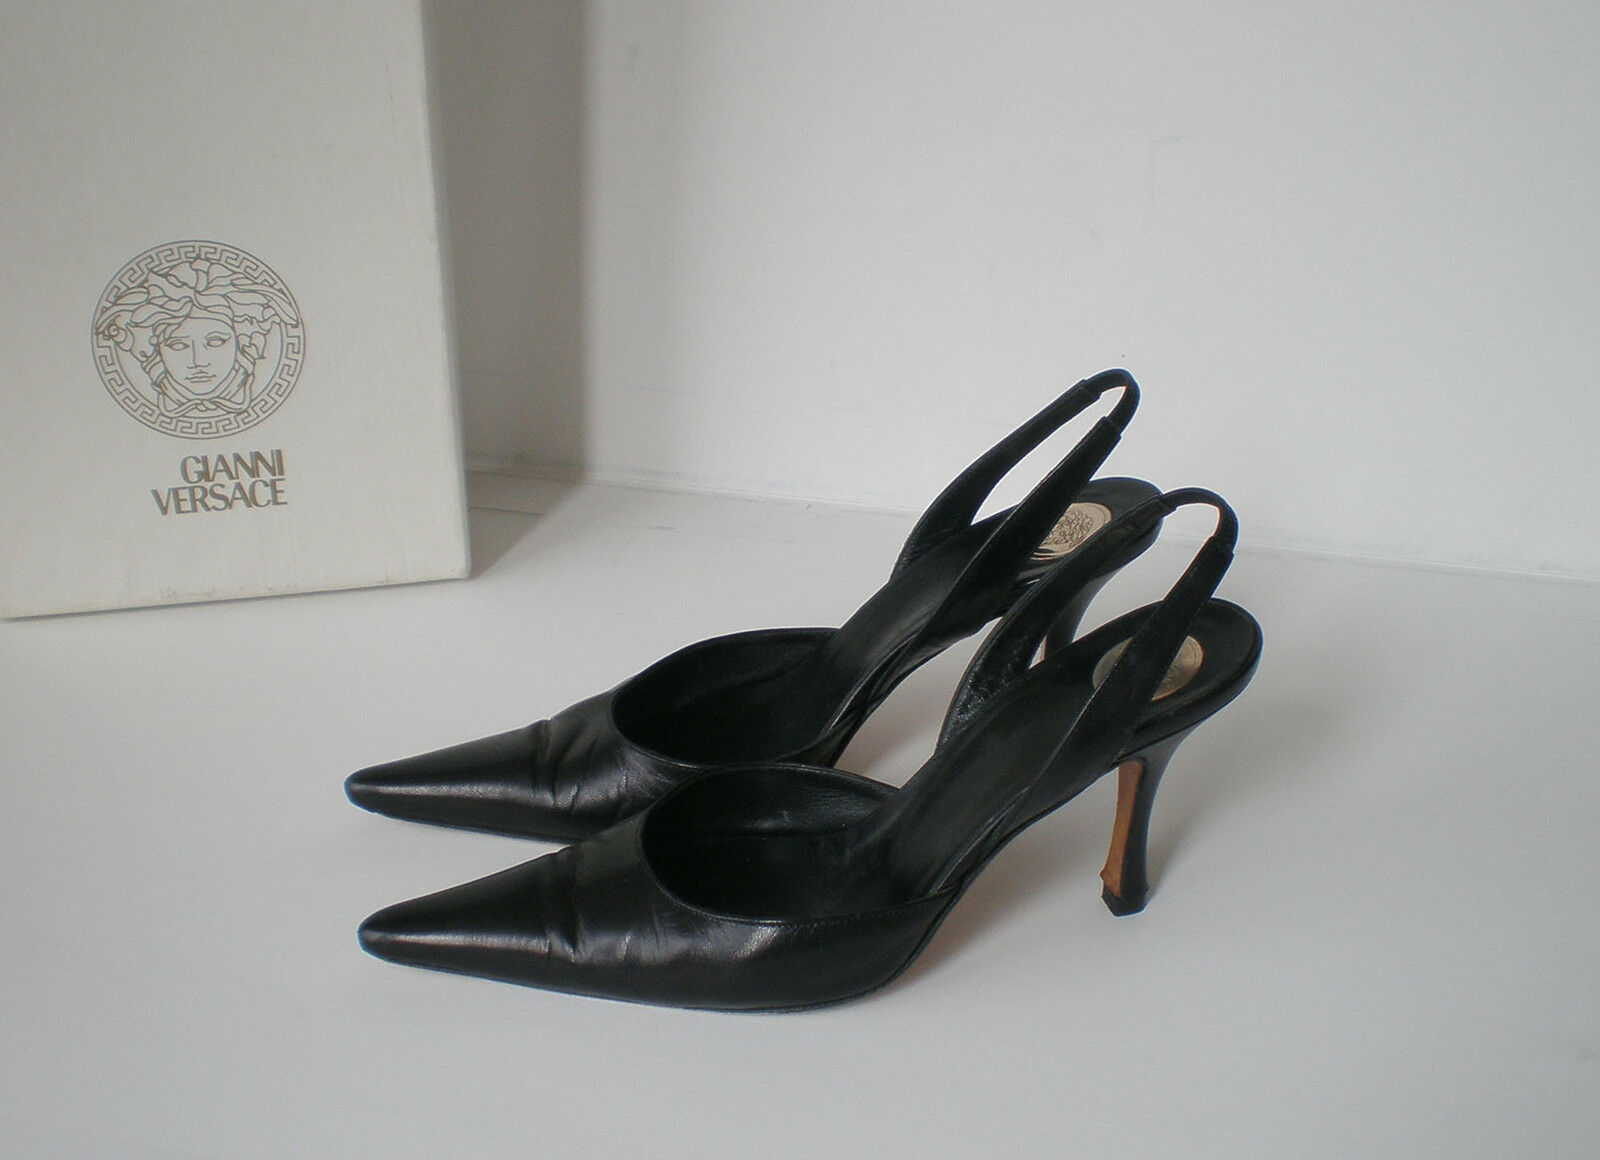 Gianni Versace Leather schuhe Heels with box, 100% Original, Größe  35.5